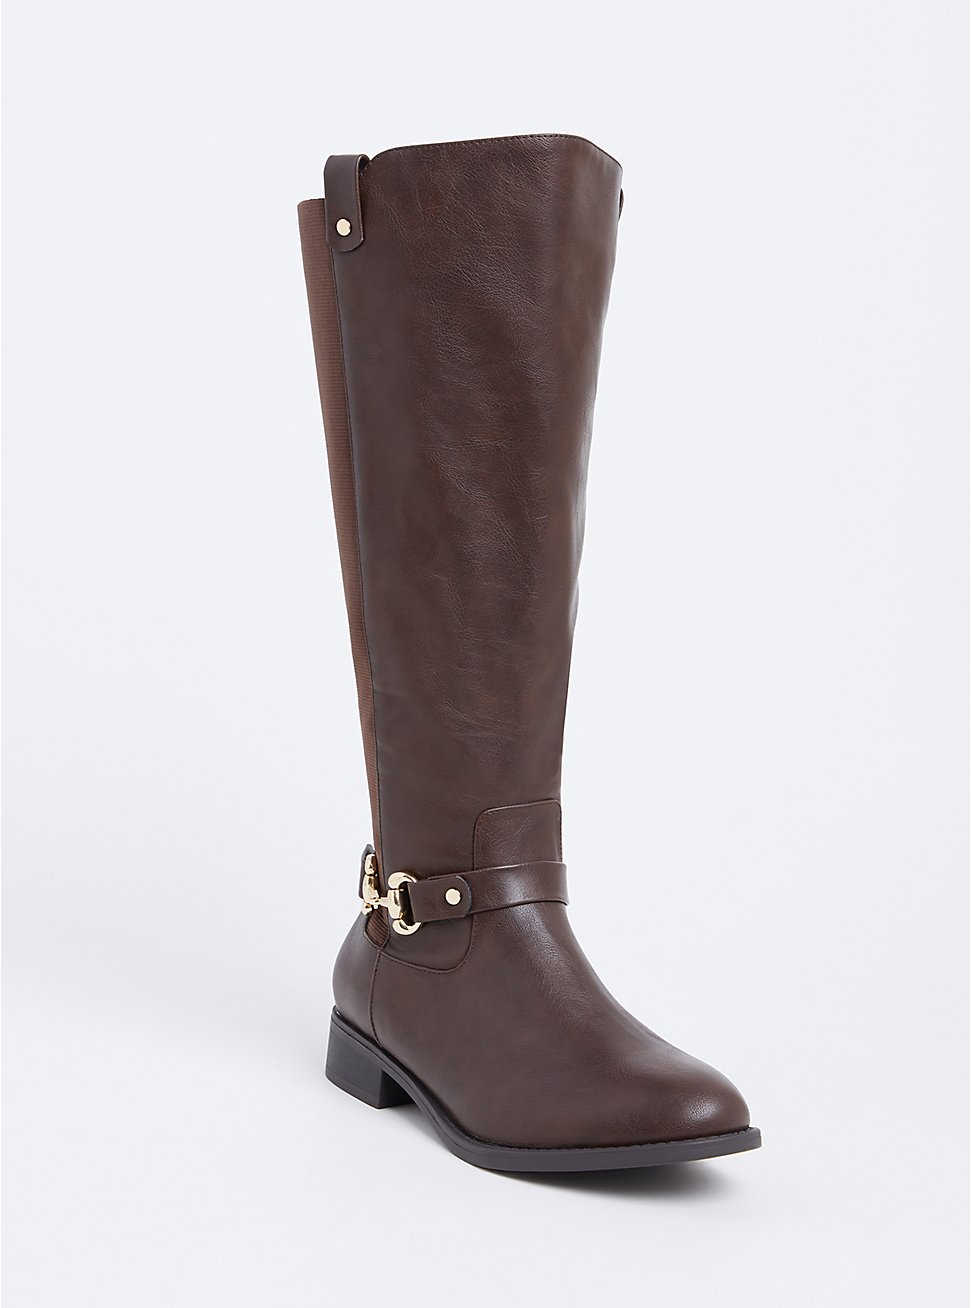 Plus Size Chocolate Brown Faux Leather Knee-High Riding Boot (WW & Wide to Extra Wide Calf), BROWN, hi-res